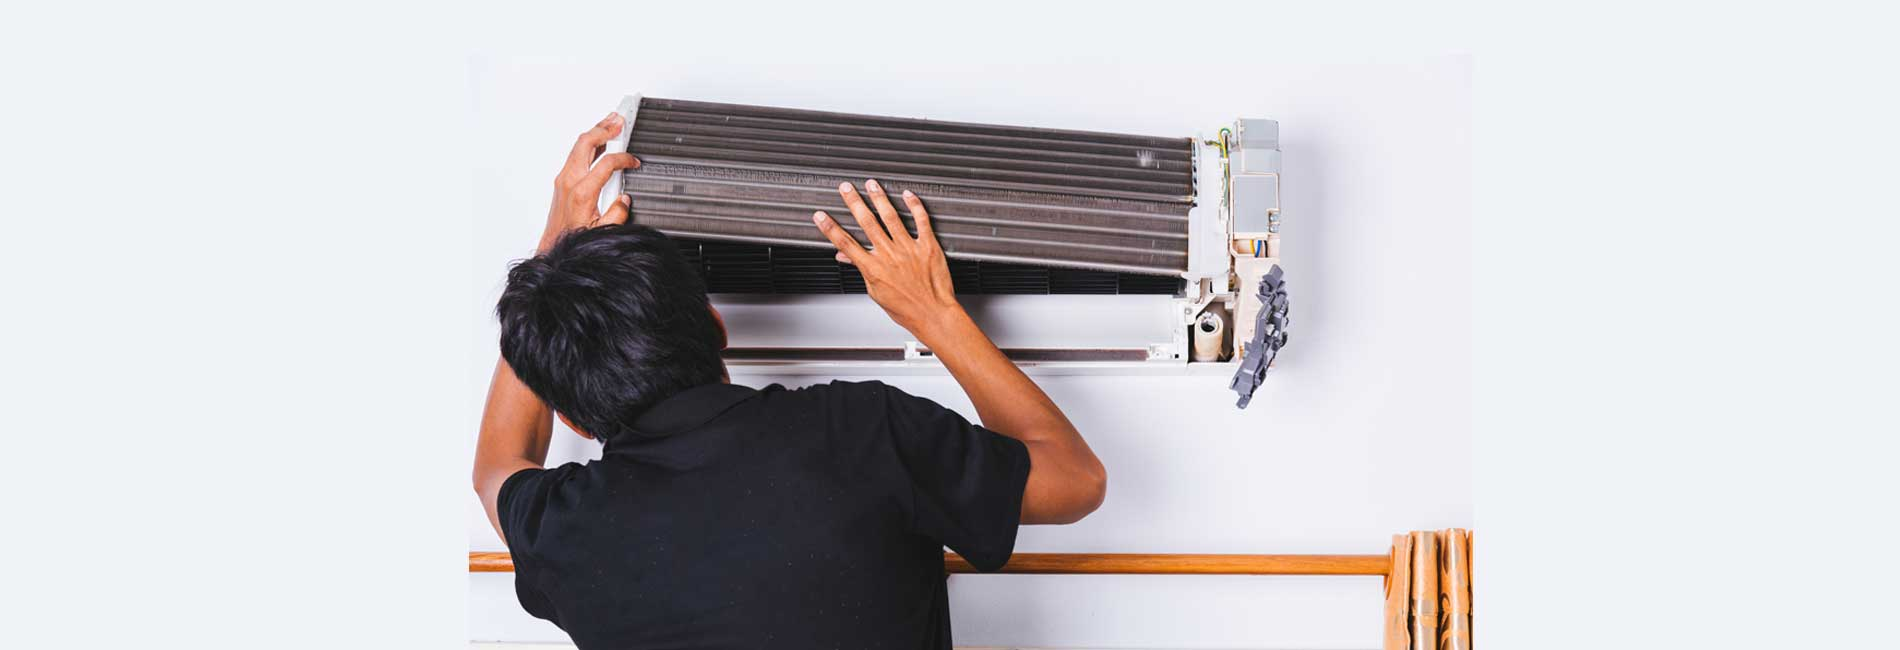 AC Uninstallation Charges in Poonamallee